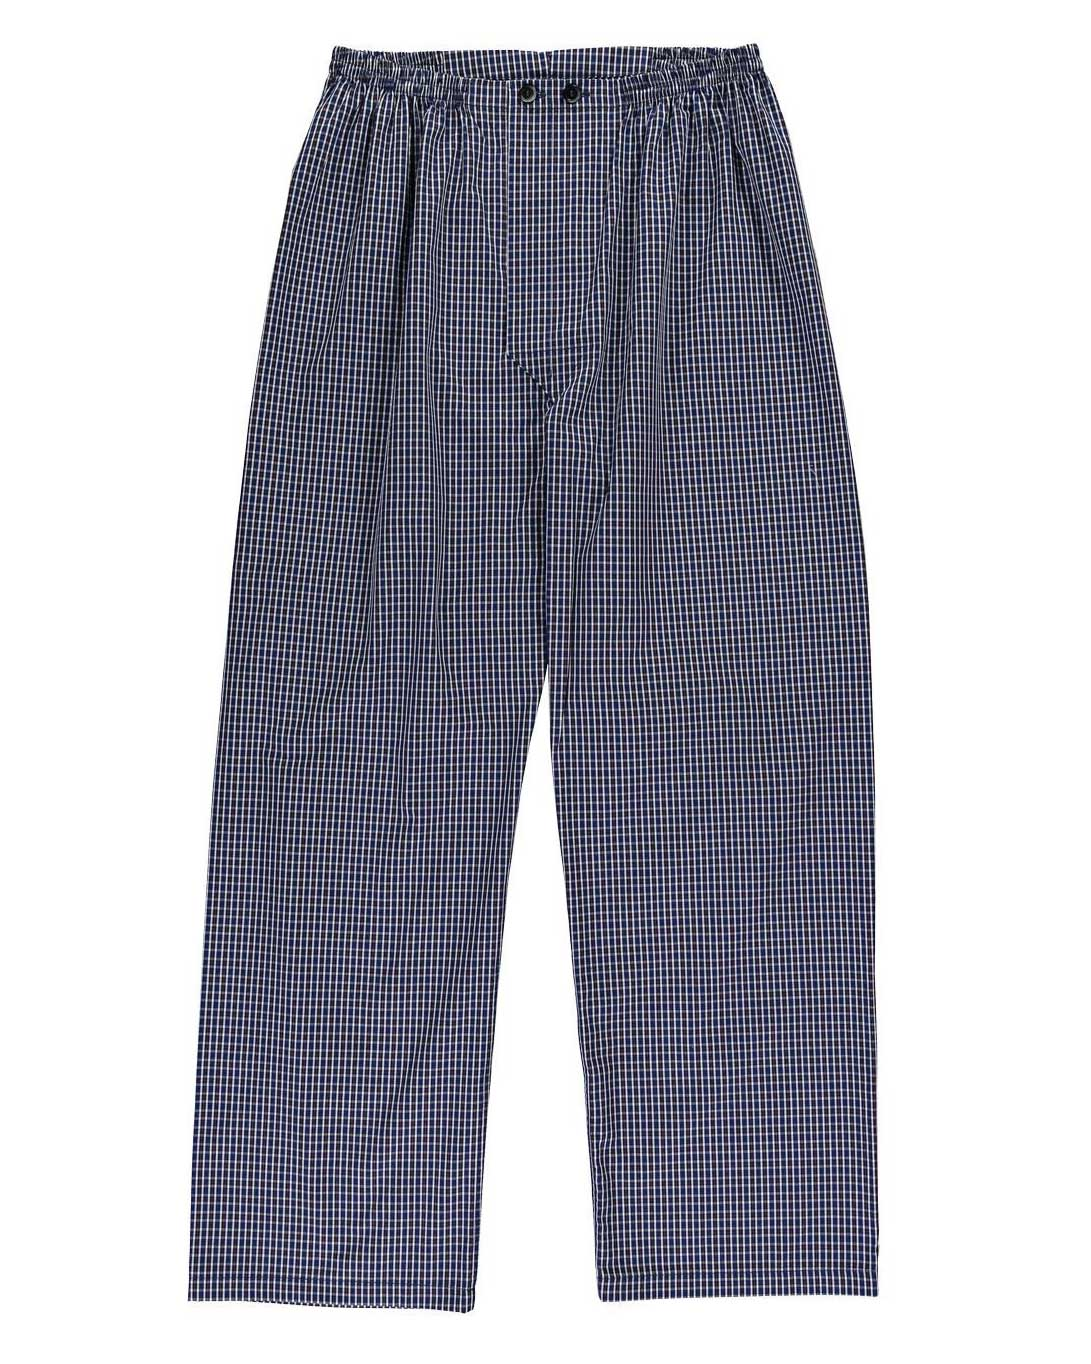 Men's Classic Cotton Pyjamas - A254